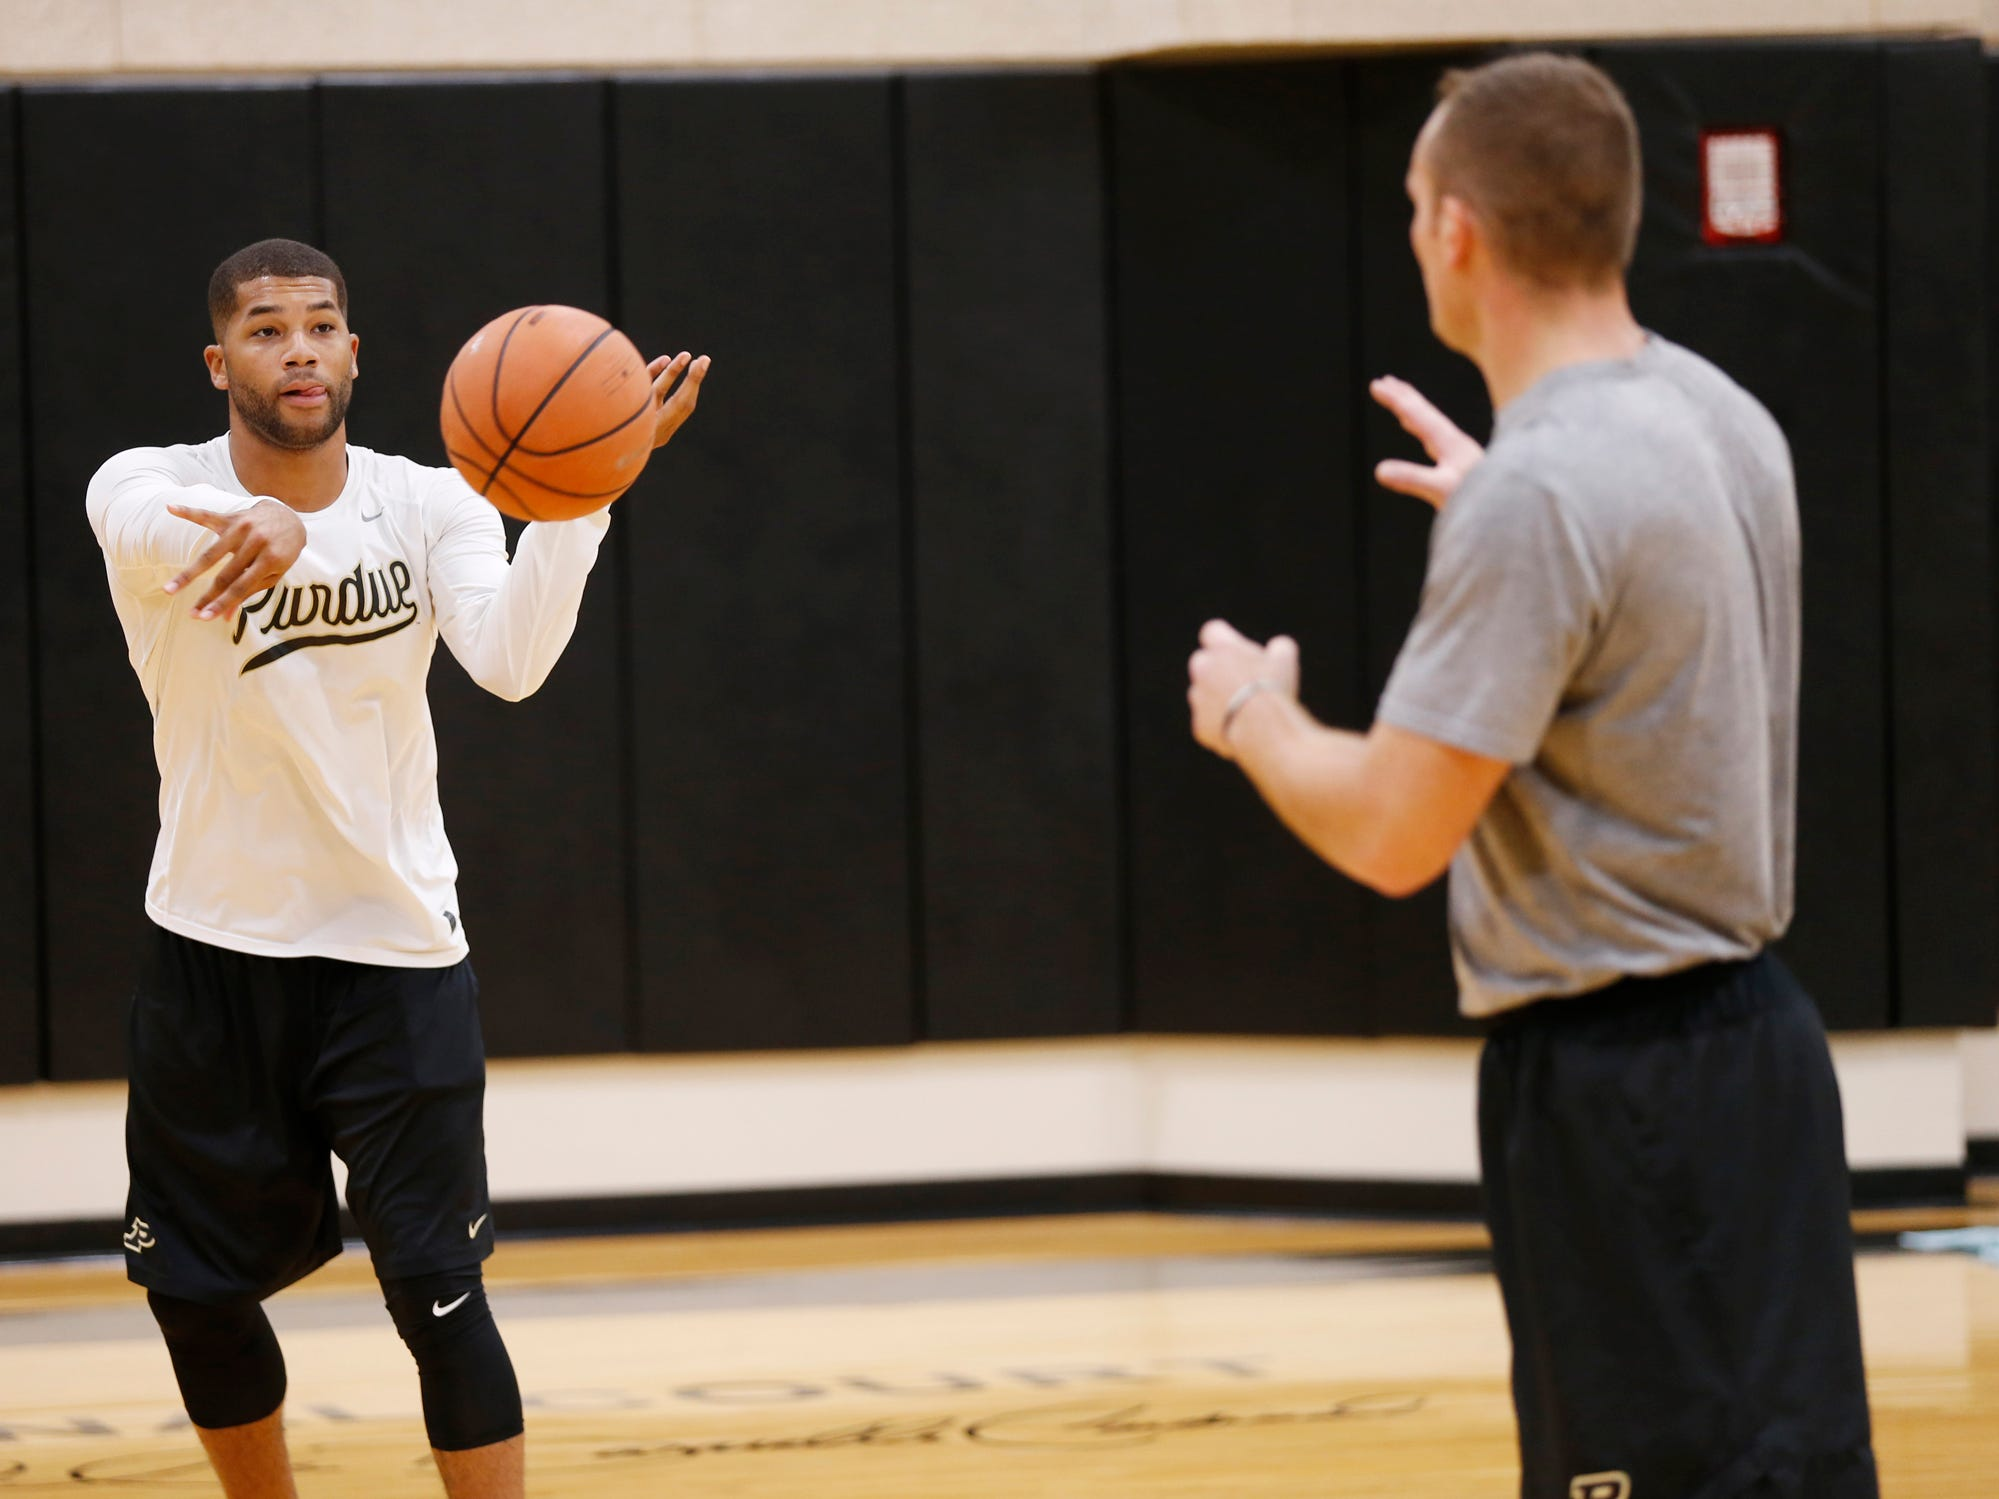 Graduate student manager Joey Brooks passes the ball to fellow graduate student manager D. J. Byrd during the first official practice of the season for Purdue men's basketball Tuesday, September 25, 2018, at Cardinal Court in Mackey Arena.